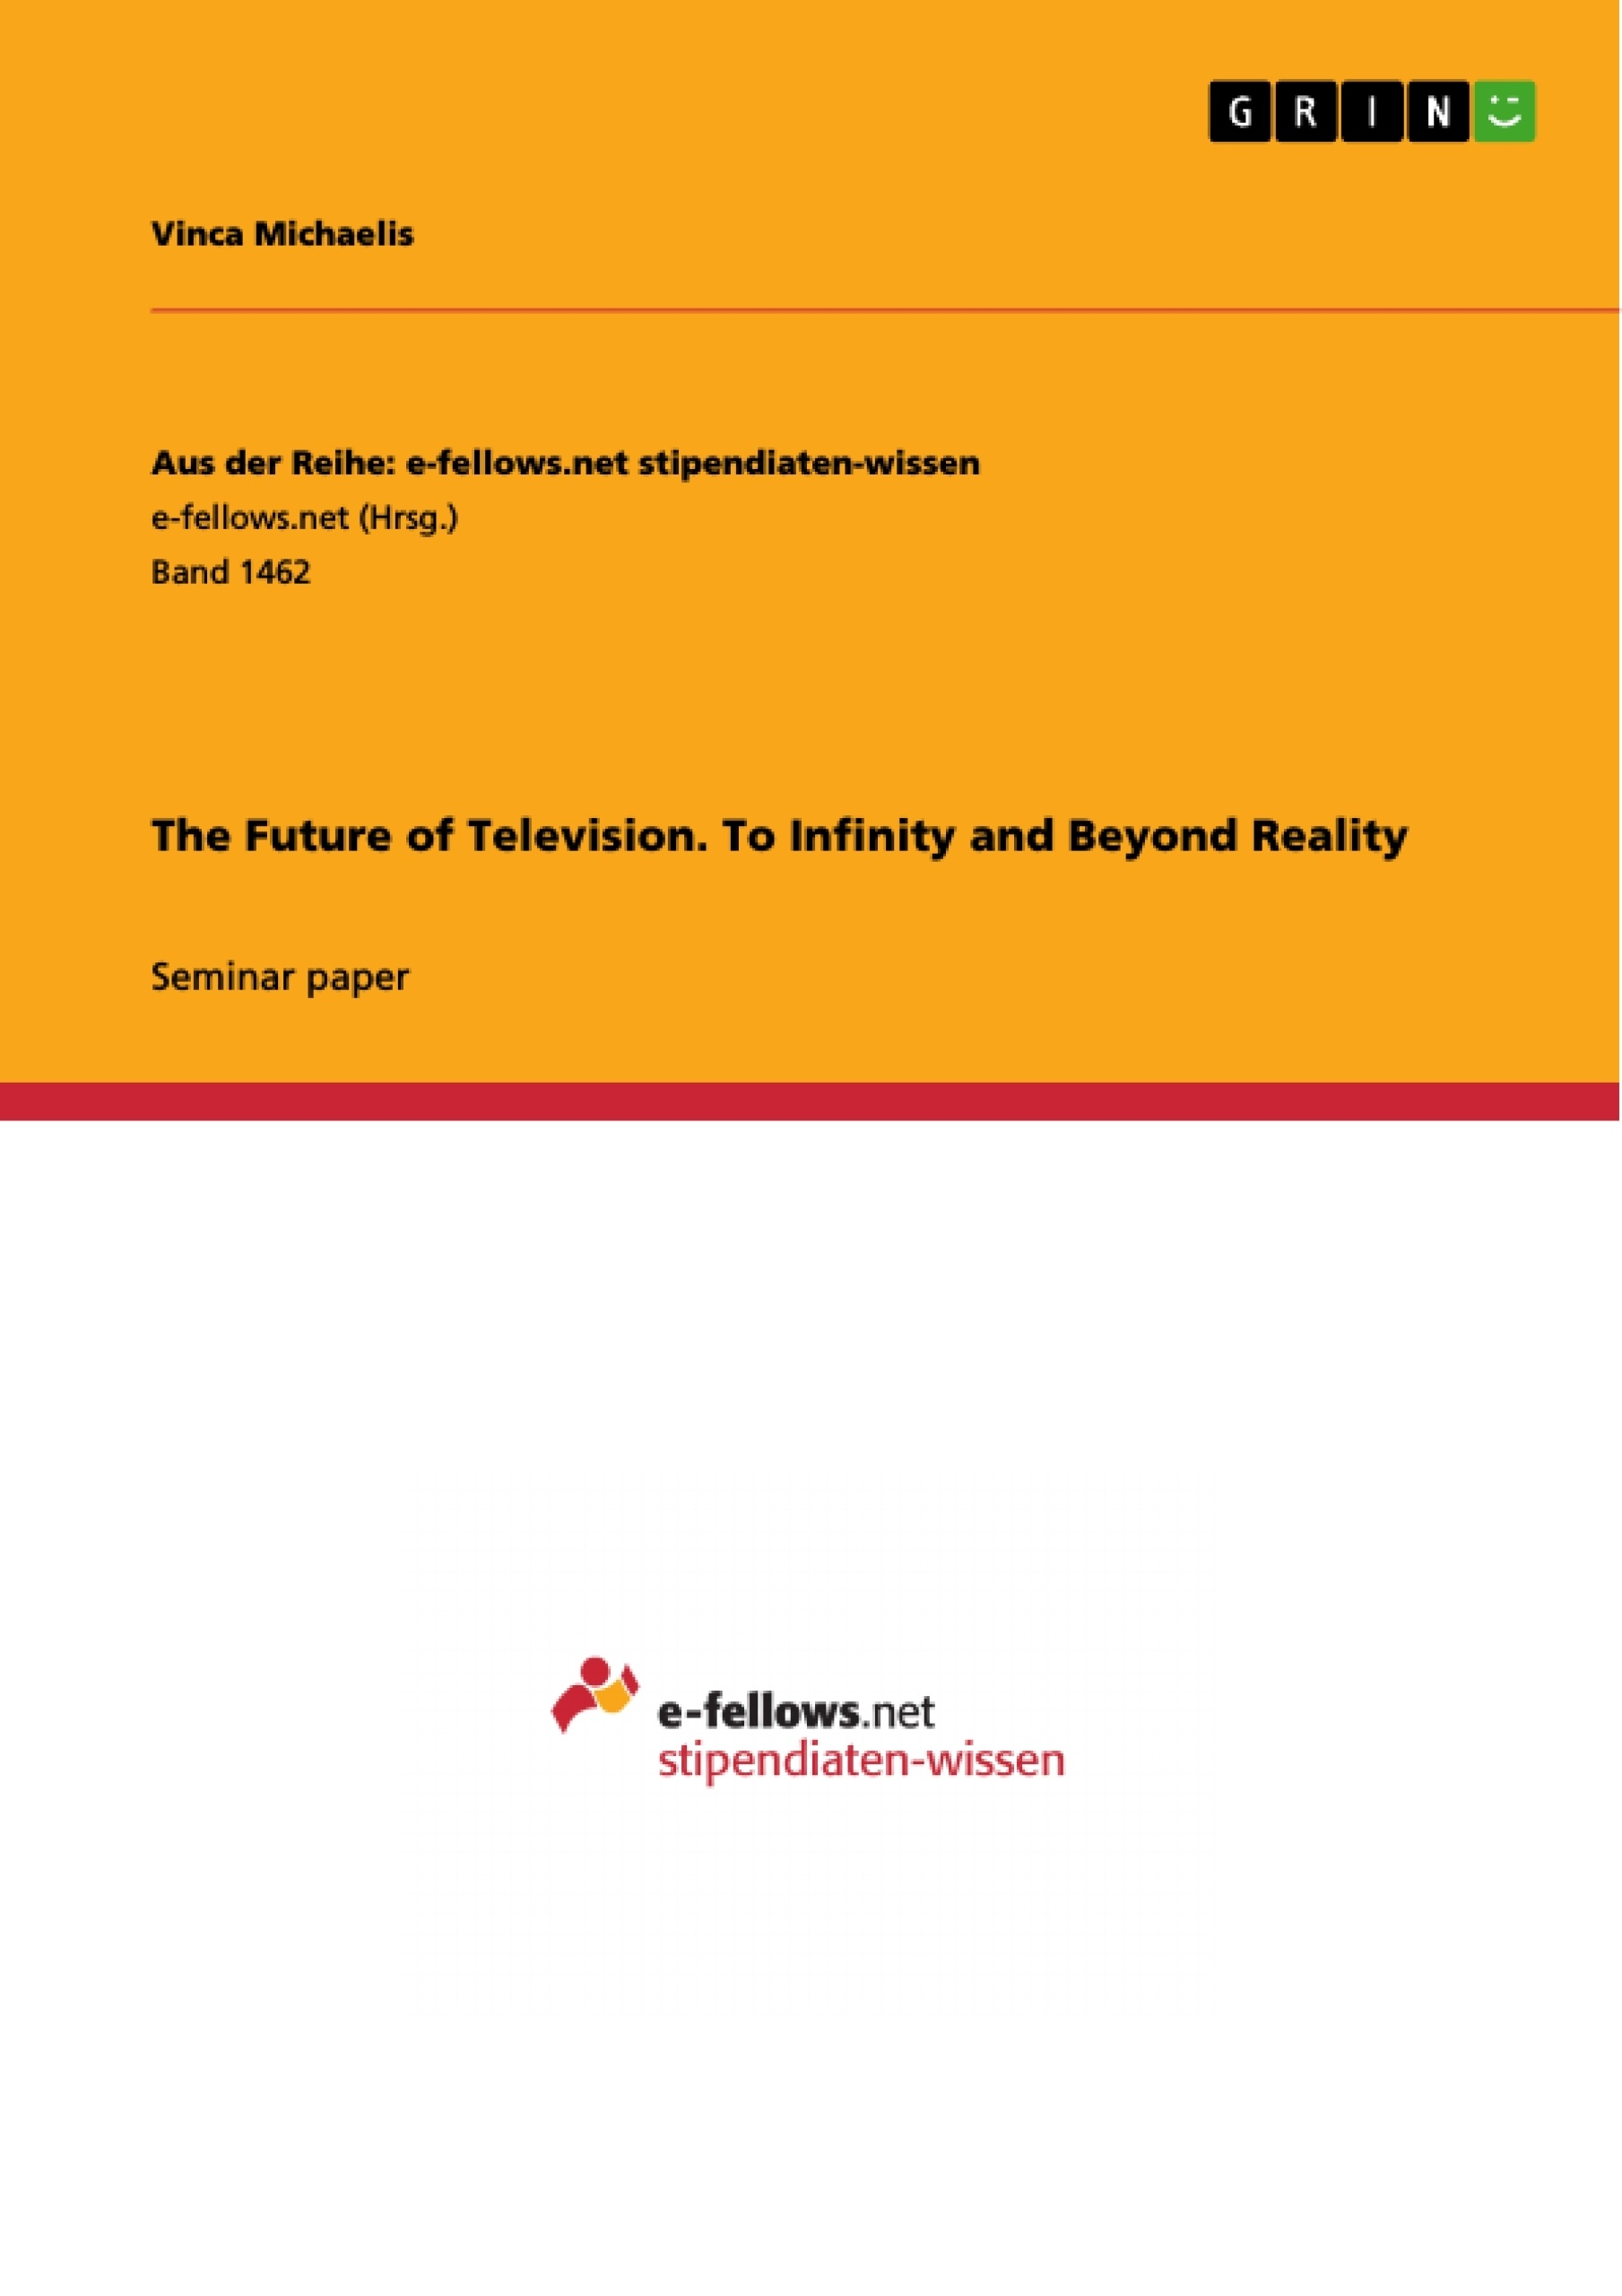 Title: The Future of Television. To Infinity and Beyond Reality